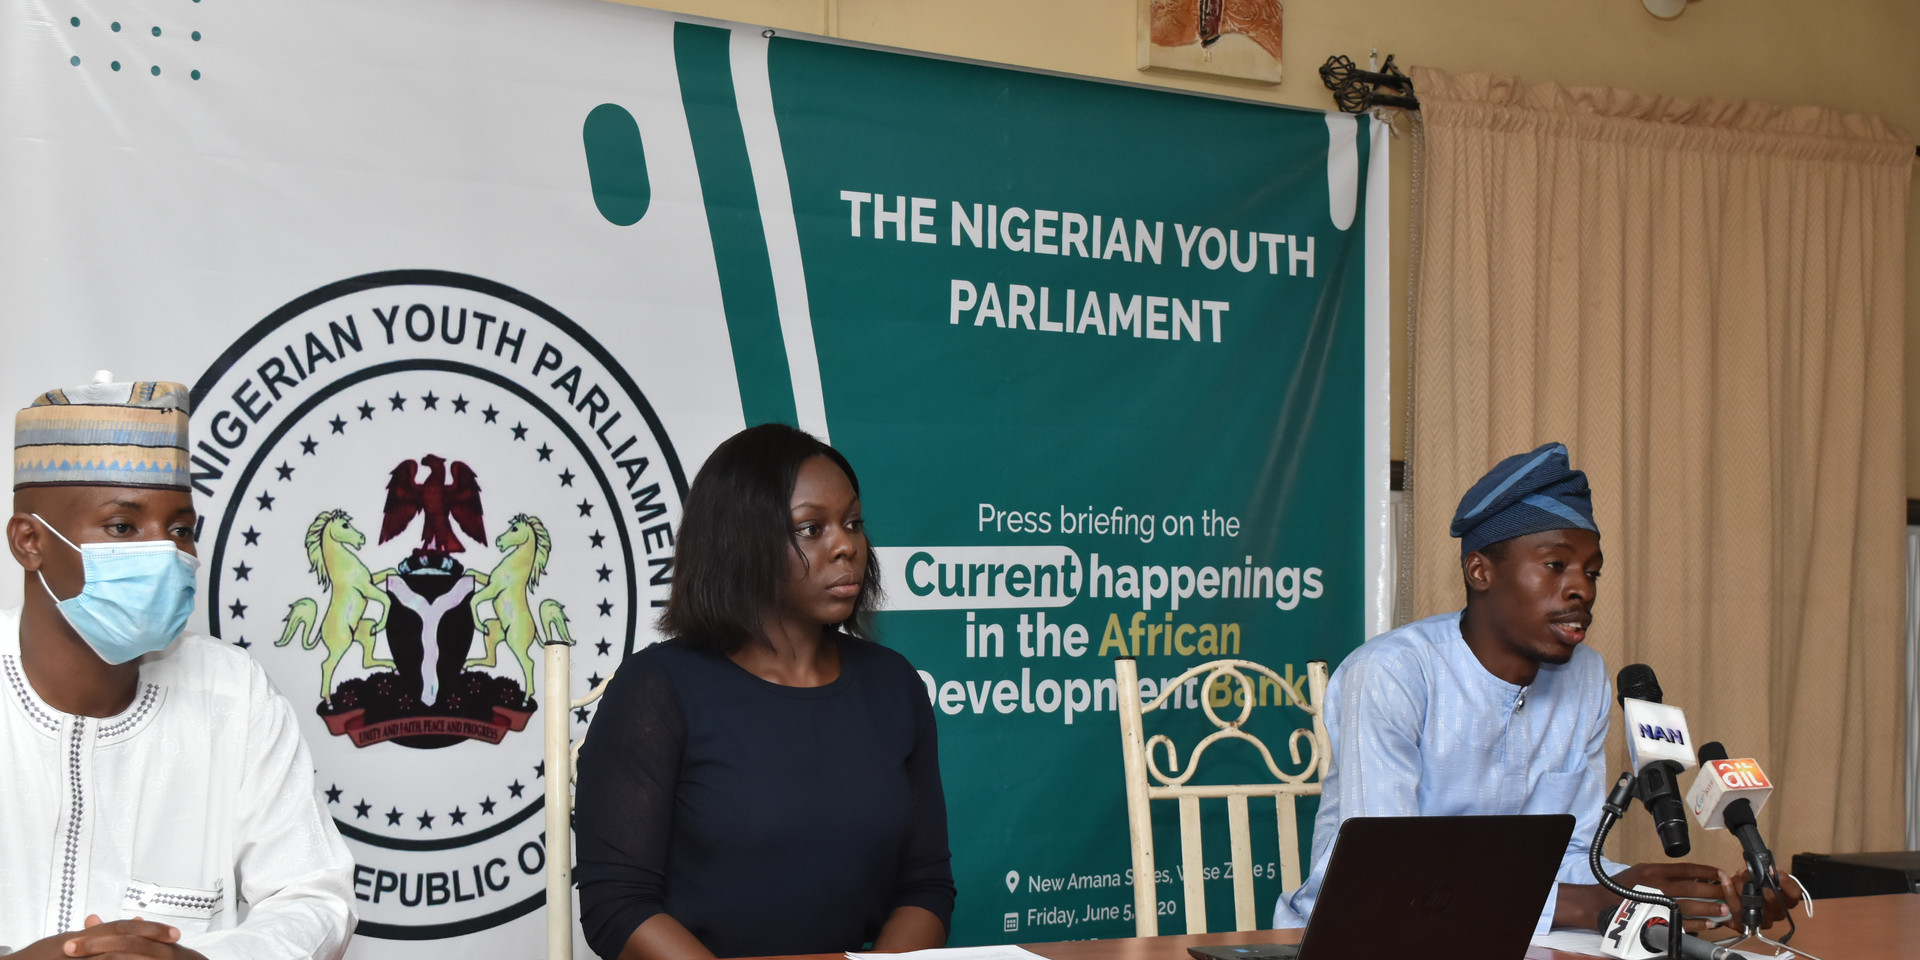 DSC_0636PRESS BRIEFING OF THE NIGERIAN YOUTH PARLIAMENT ON THE CURRENT AFFAIRS AT THE AFRICAN DEVELOPMENT BANK.JPG